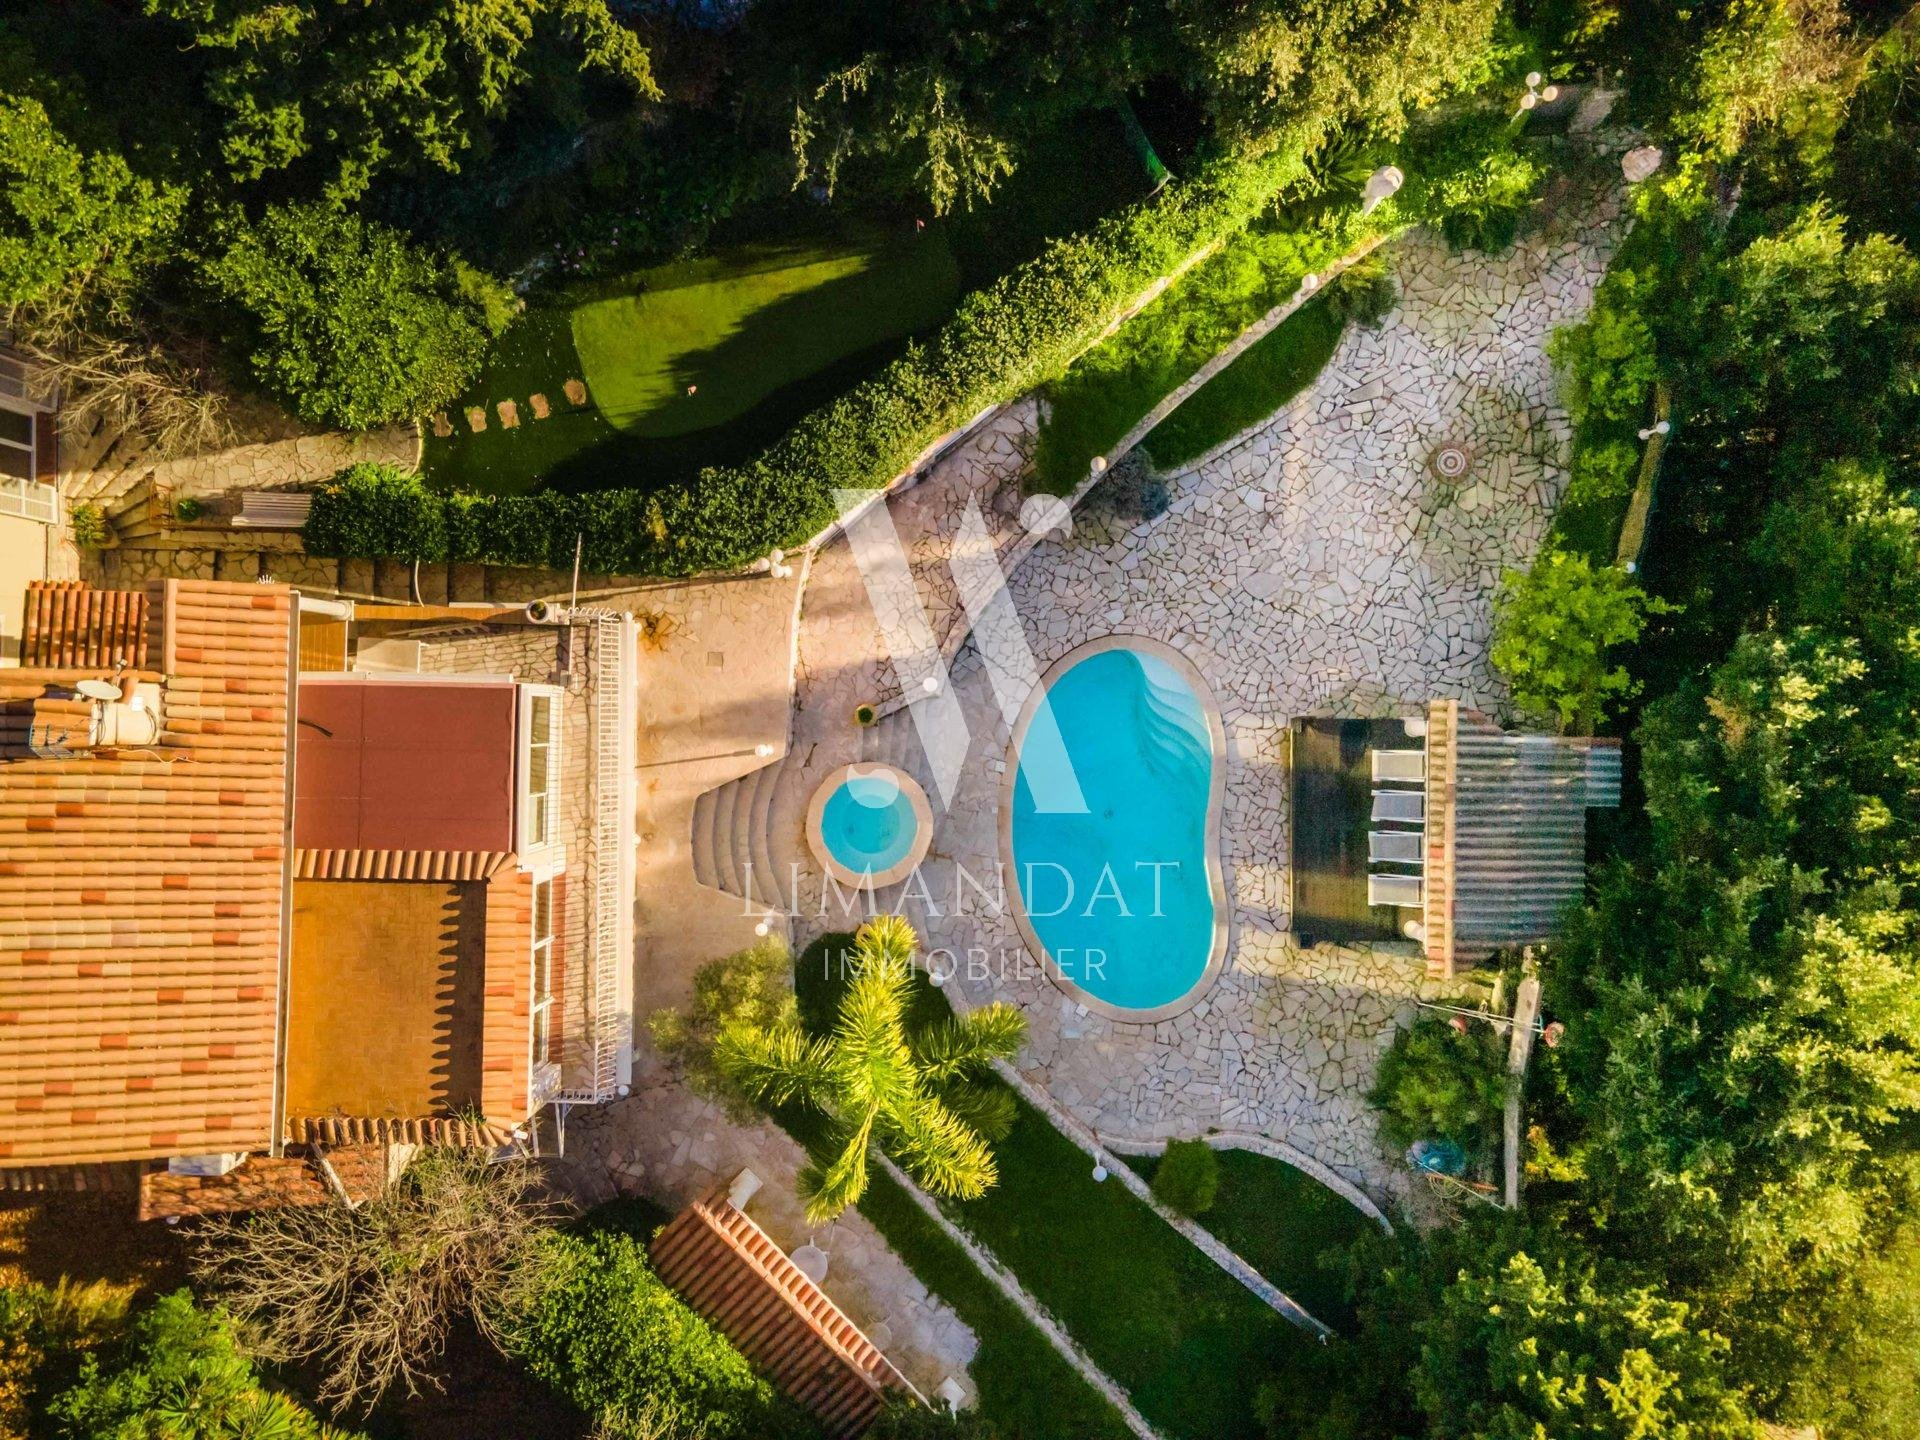 La Turbie - Villa d'exception 205 m2 - terrain 1 520 m2 - piscine